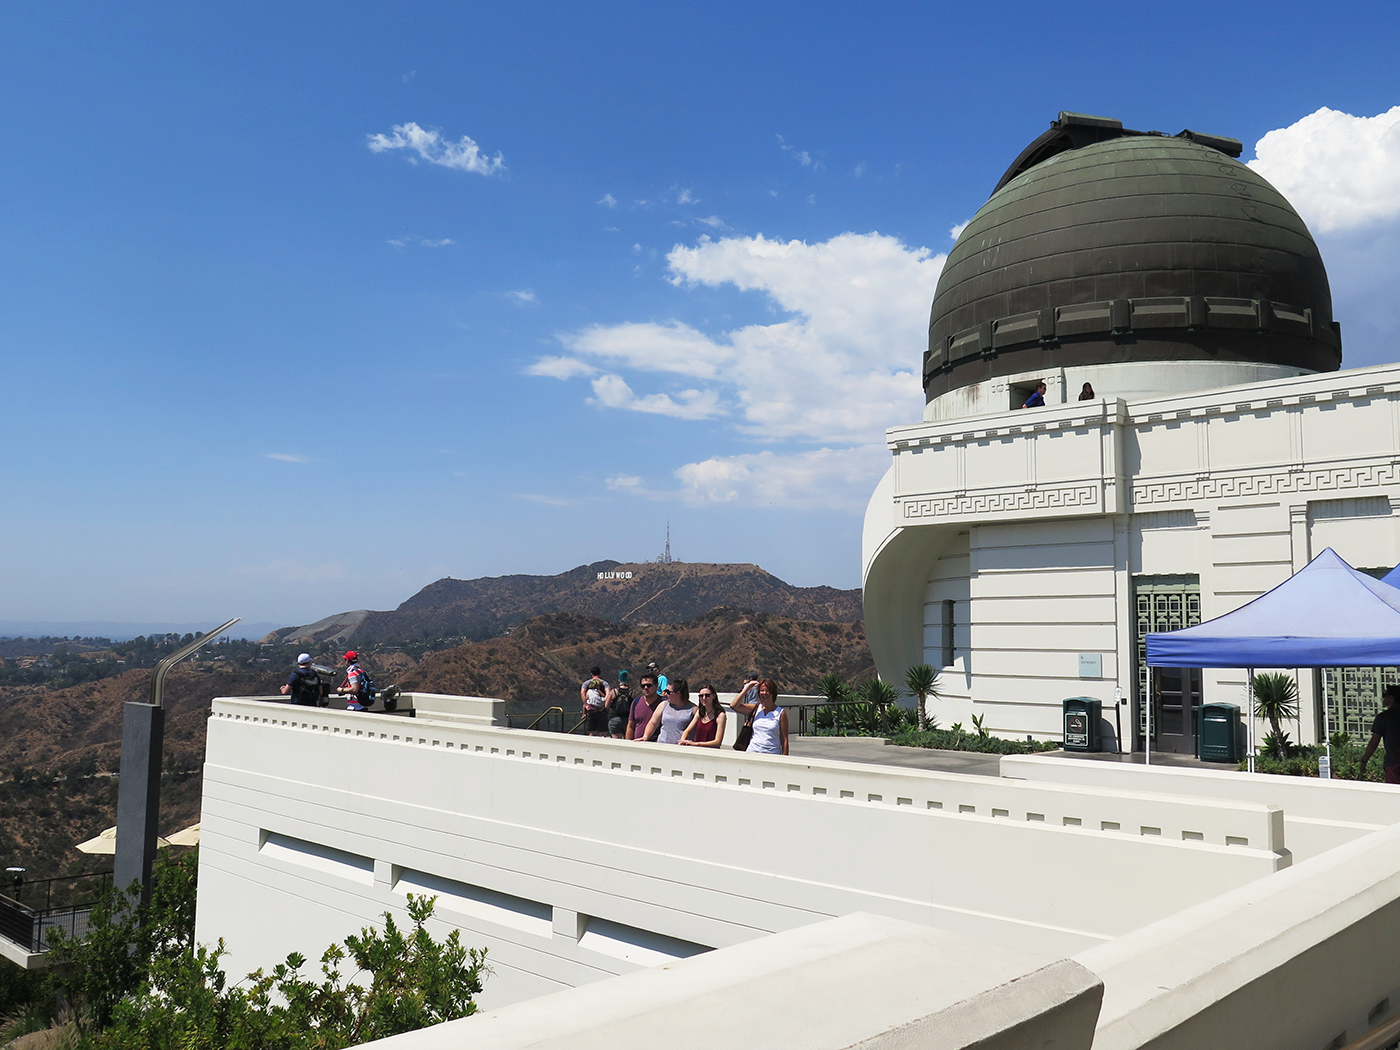 Rejseguide Los Angeles Griffith Observatory